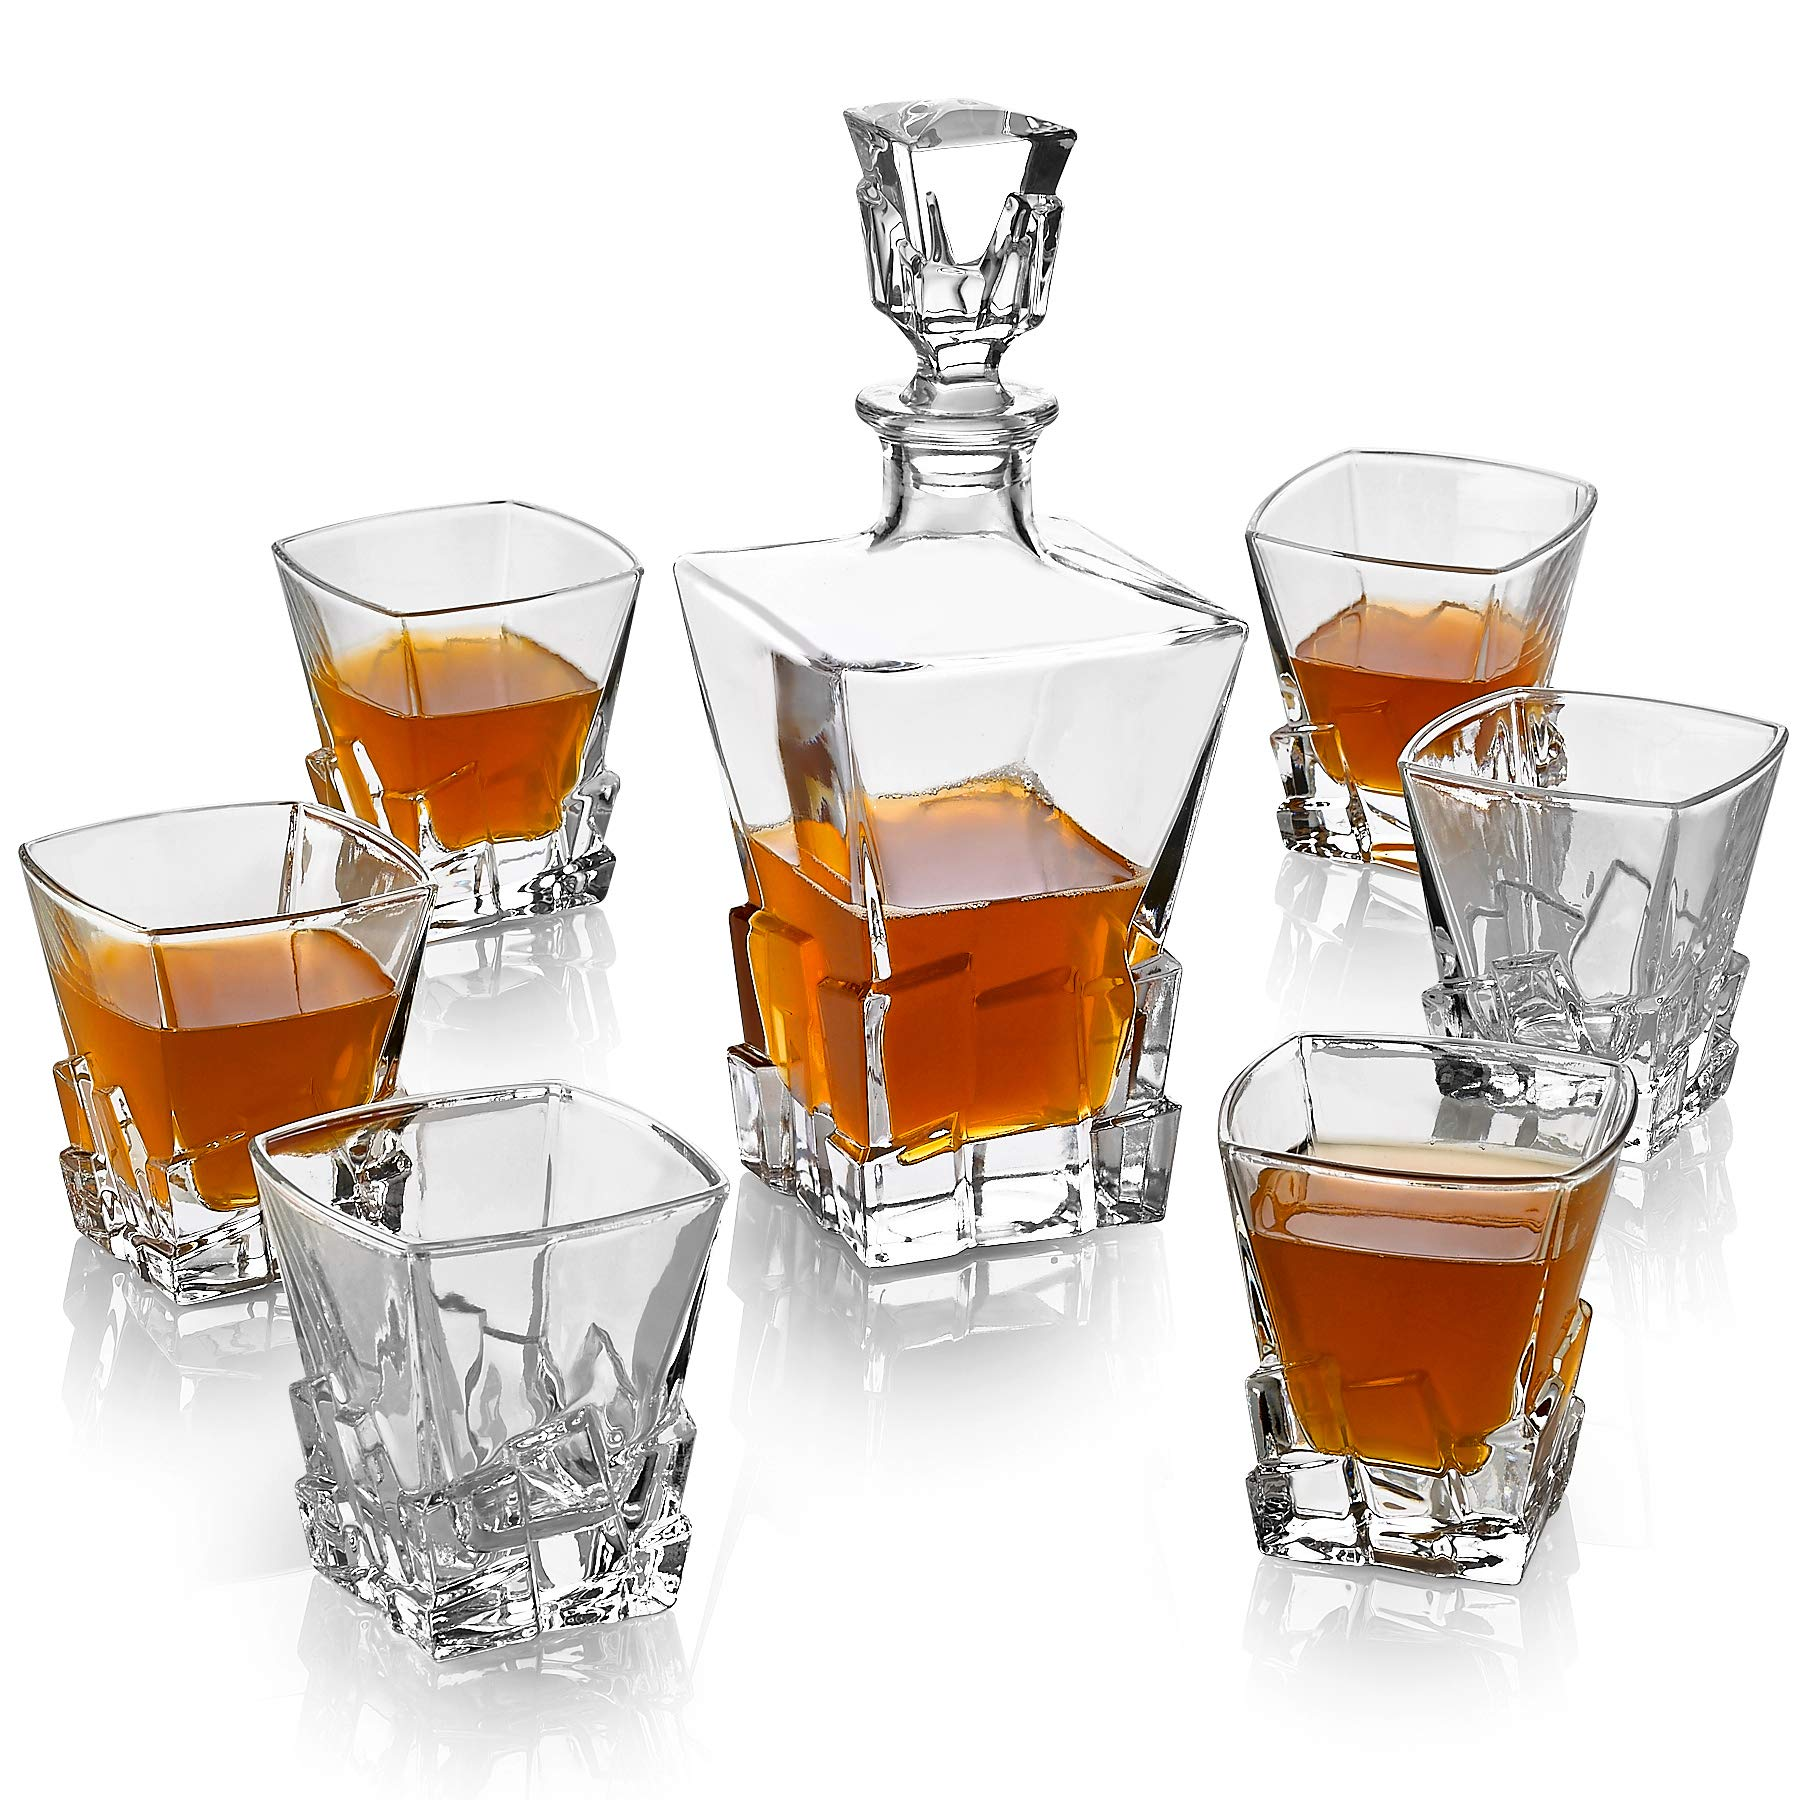 Iceberg 7 Piece Set Includes Decanter and 6 Whiskey Glasses - Old Fashion Ice Shaped Set for Bourbon, Scotch or Whiskey - Perfect Wedding or Anniversary Gift.